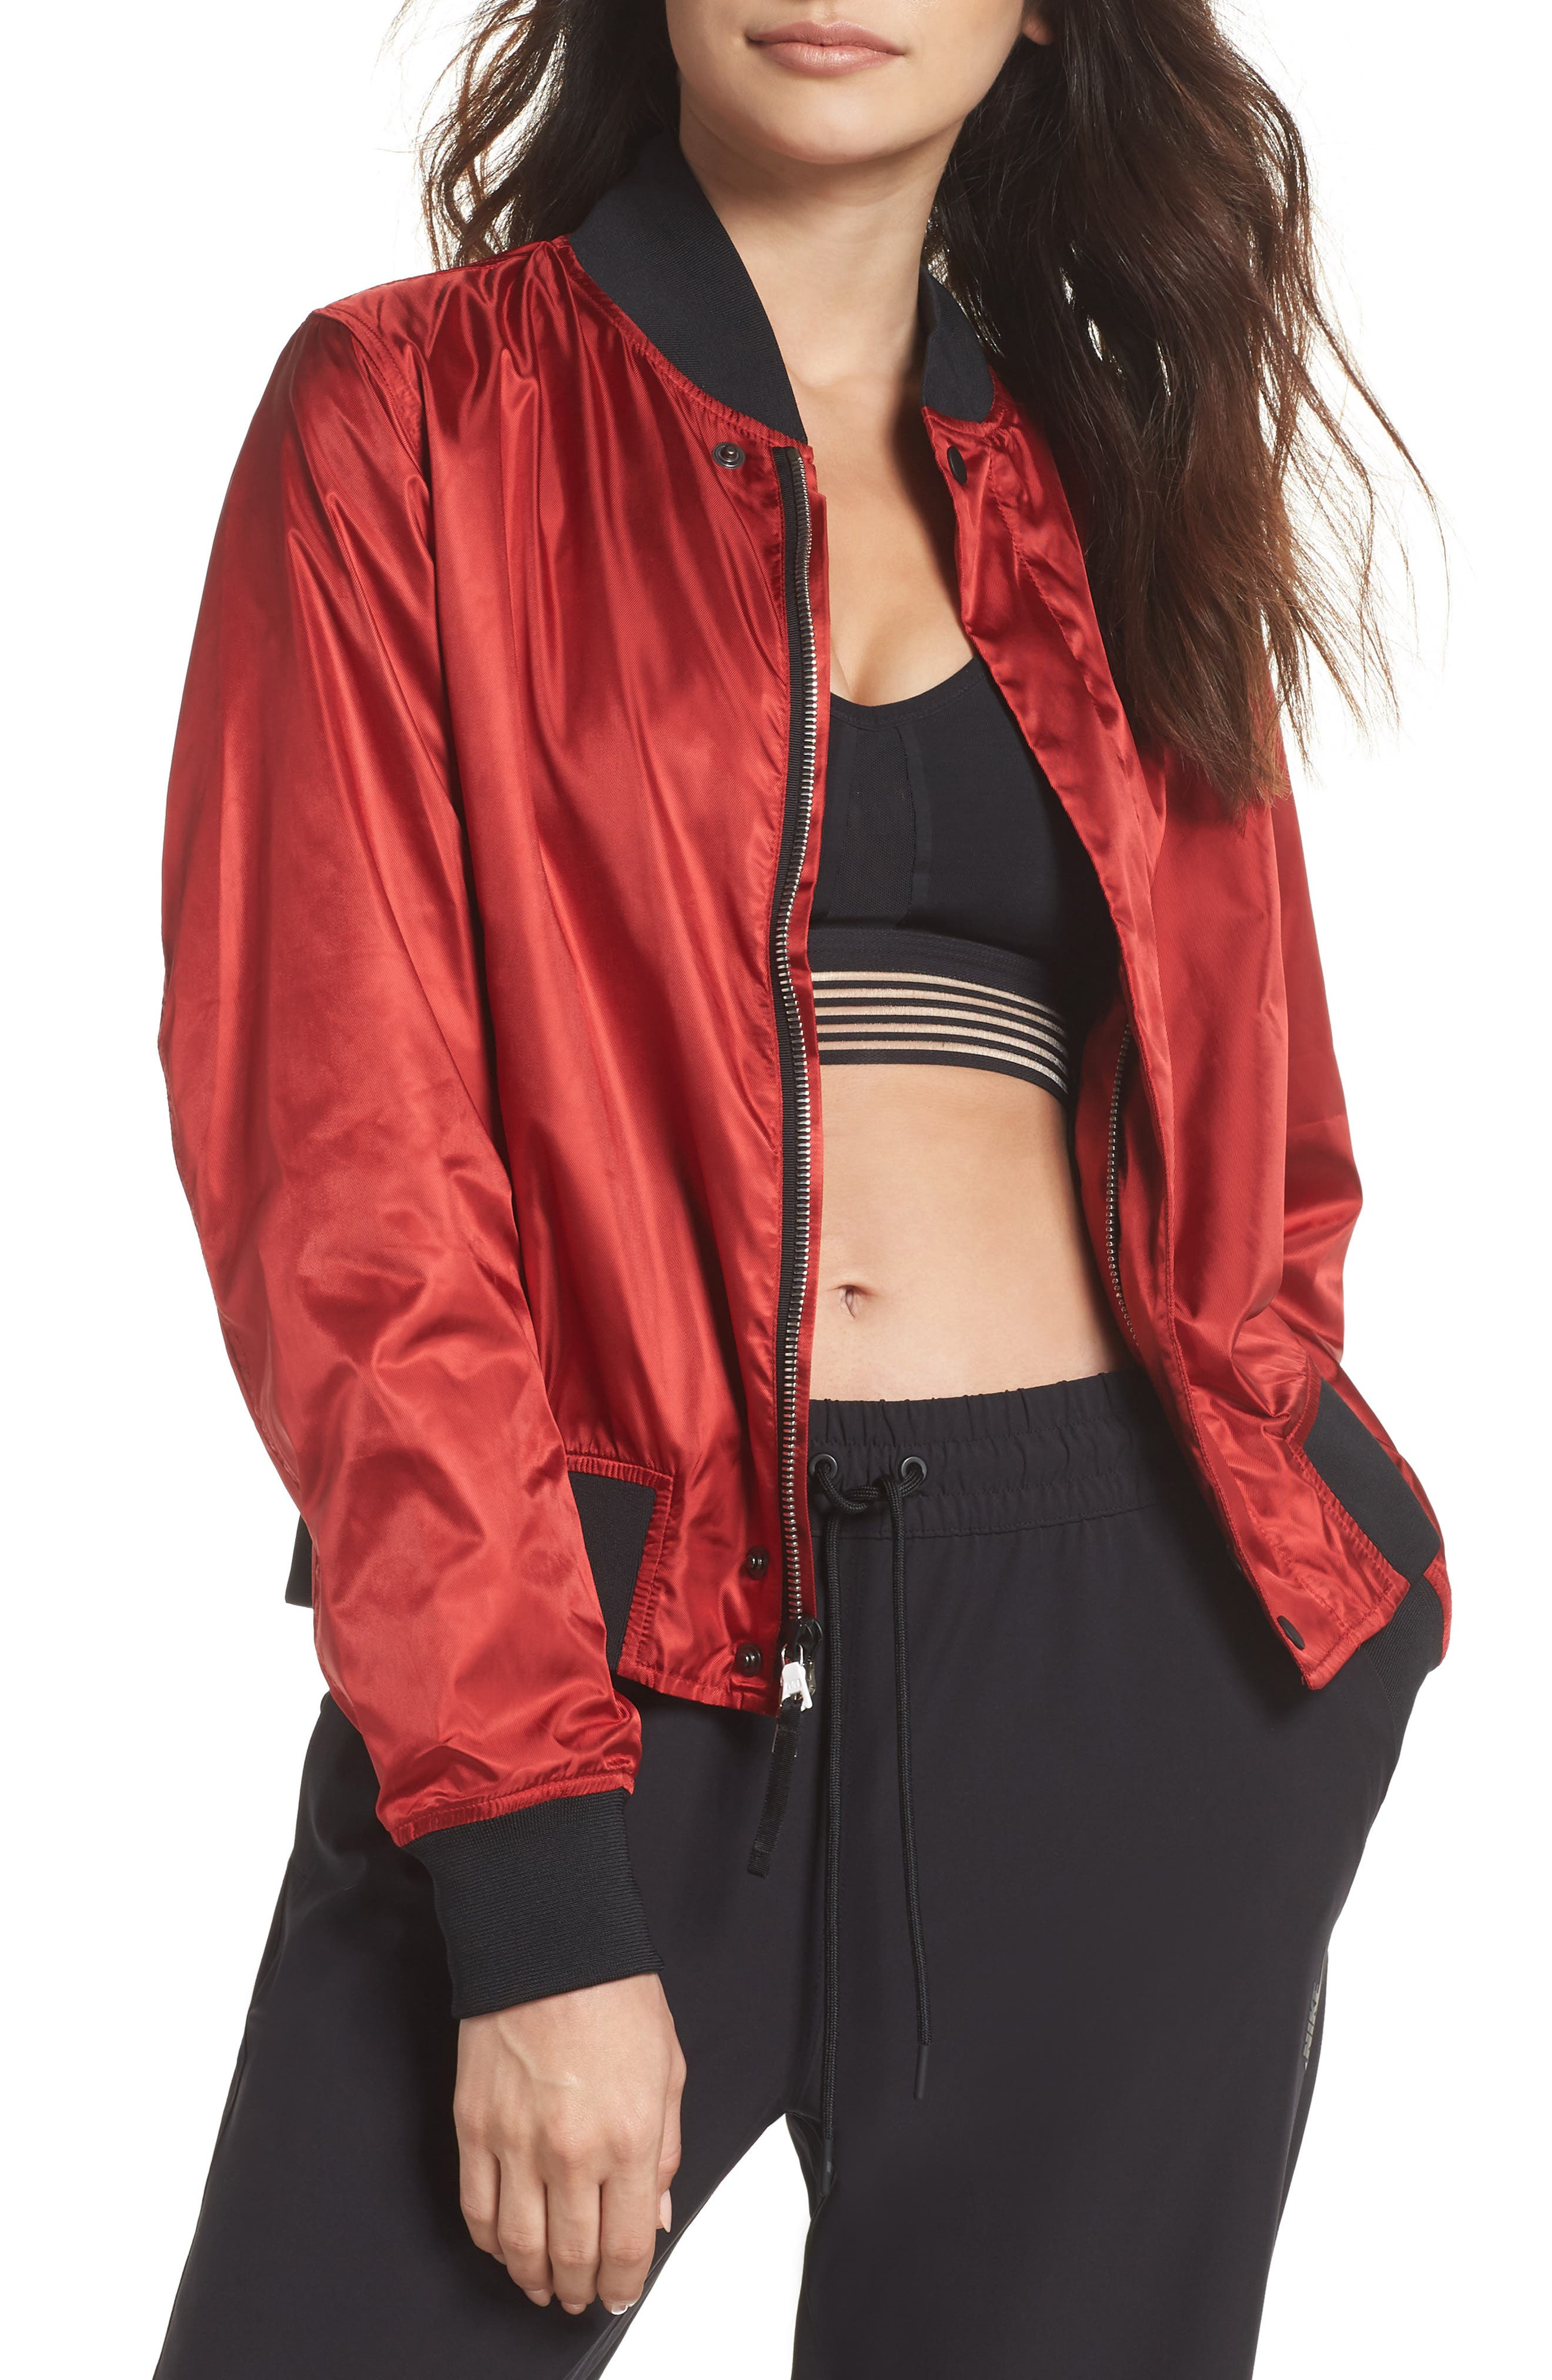 Nike Lab Collection Women's Satin Bomber Jacket by Nike